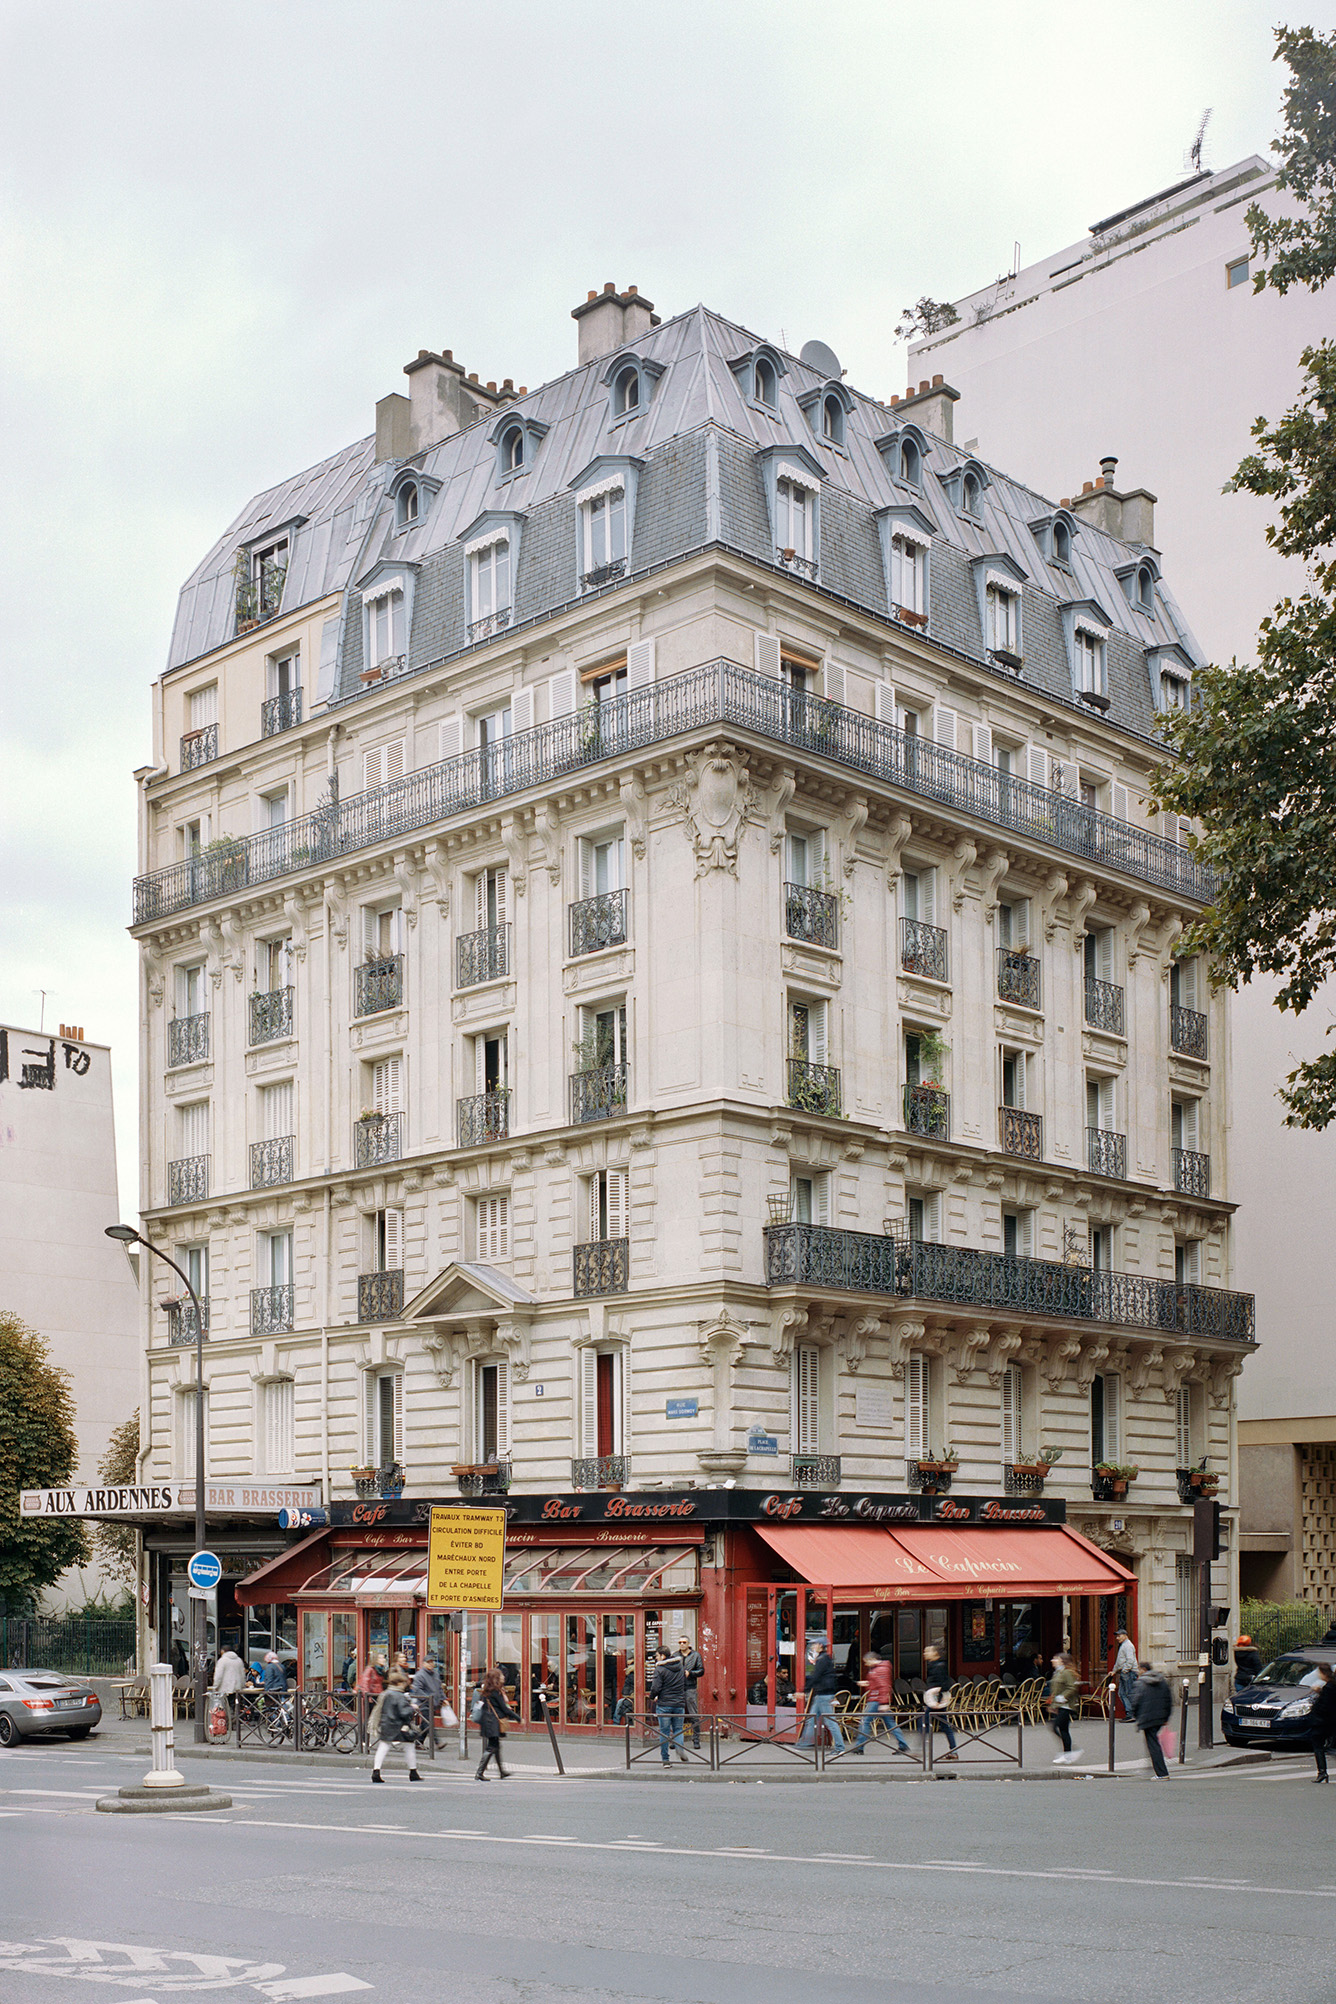 Paris Haussmann, Variations de l'identité  photography Cyrille Weiner | for the exhibition Paris Haussmann, a model relevance at Pavillon de l'Arsenal, with LAN architecture | Catalogue Park Books